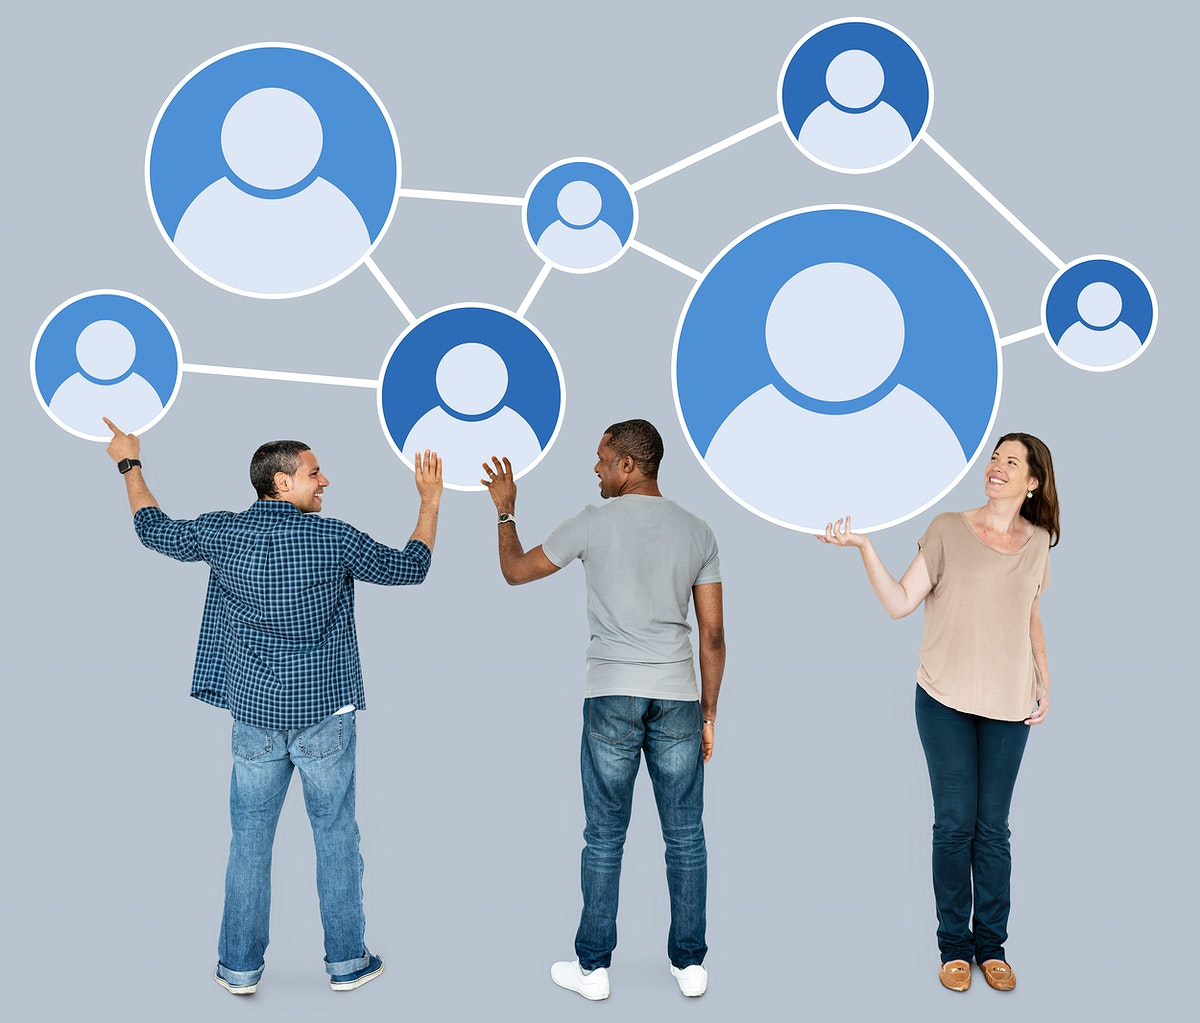 Diverse people holding networking icon